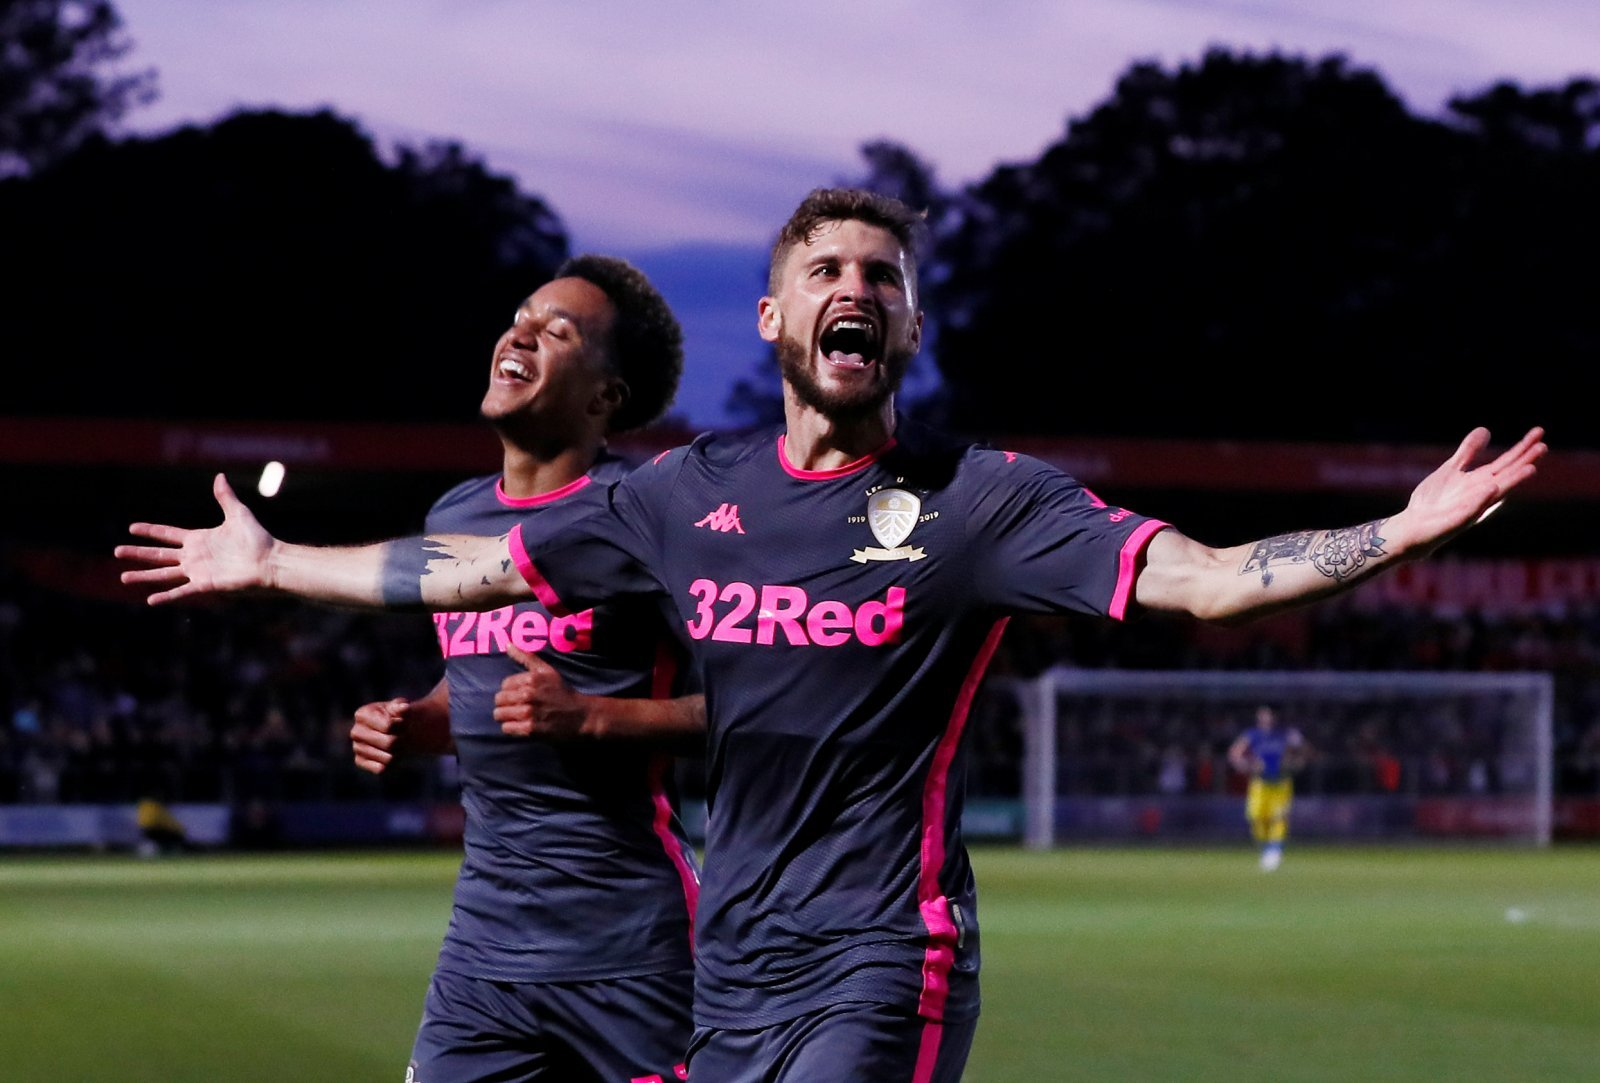 Leeds United: Reports suggest Mateusz Klich set for contract extension